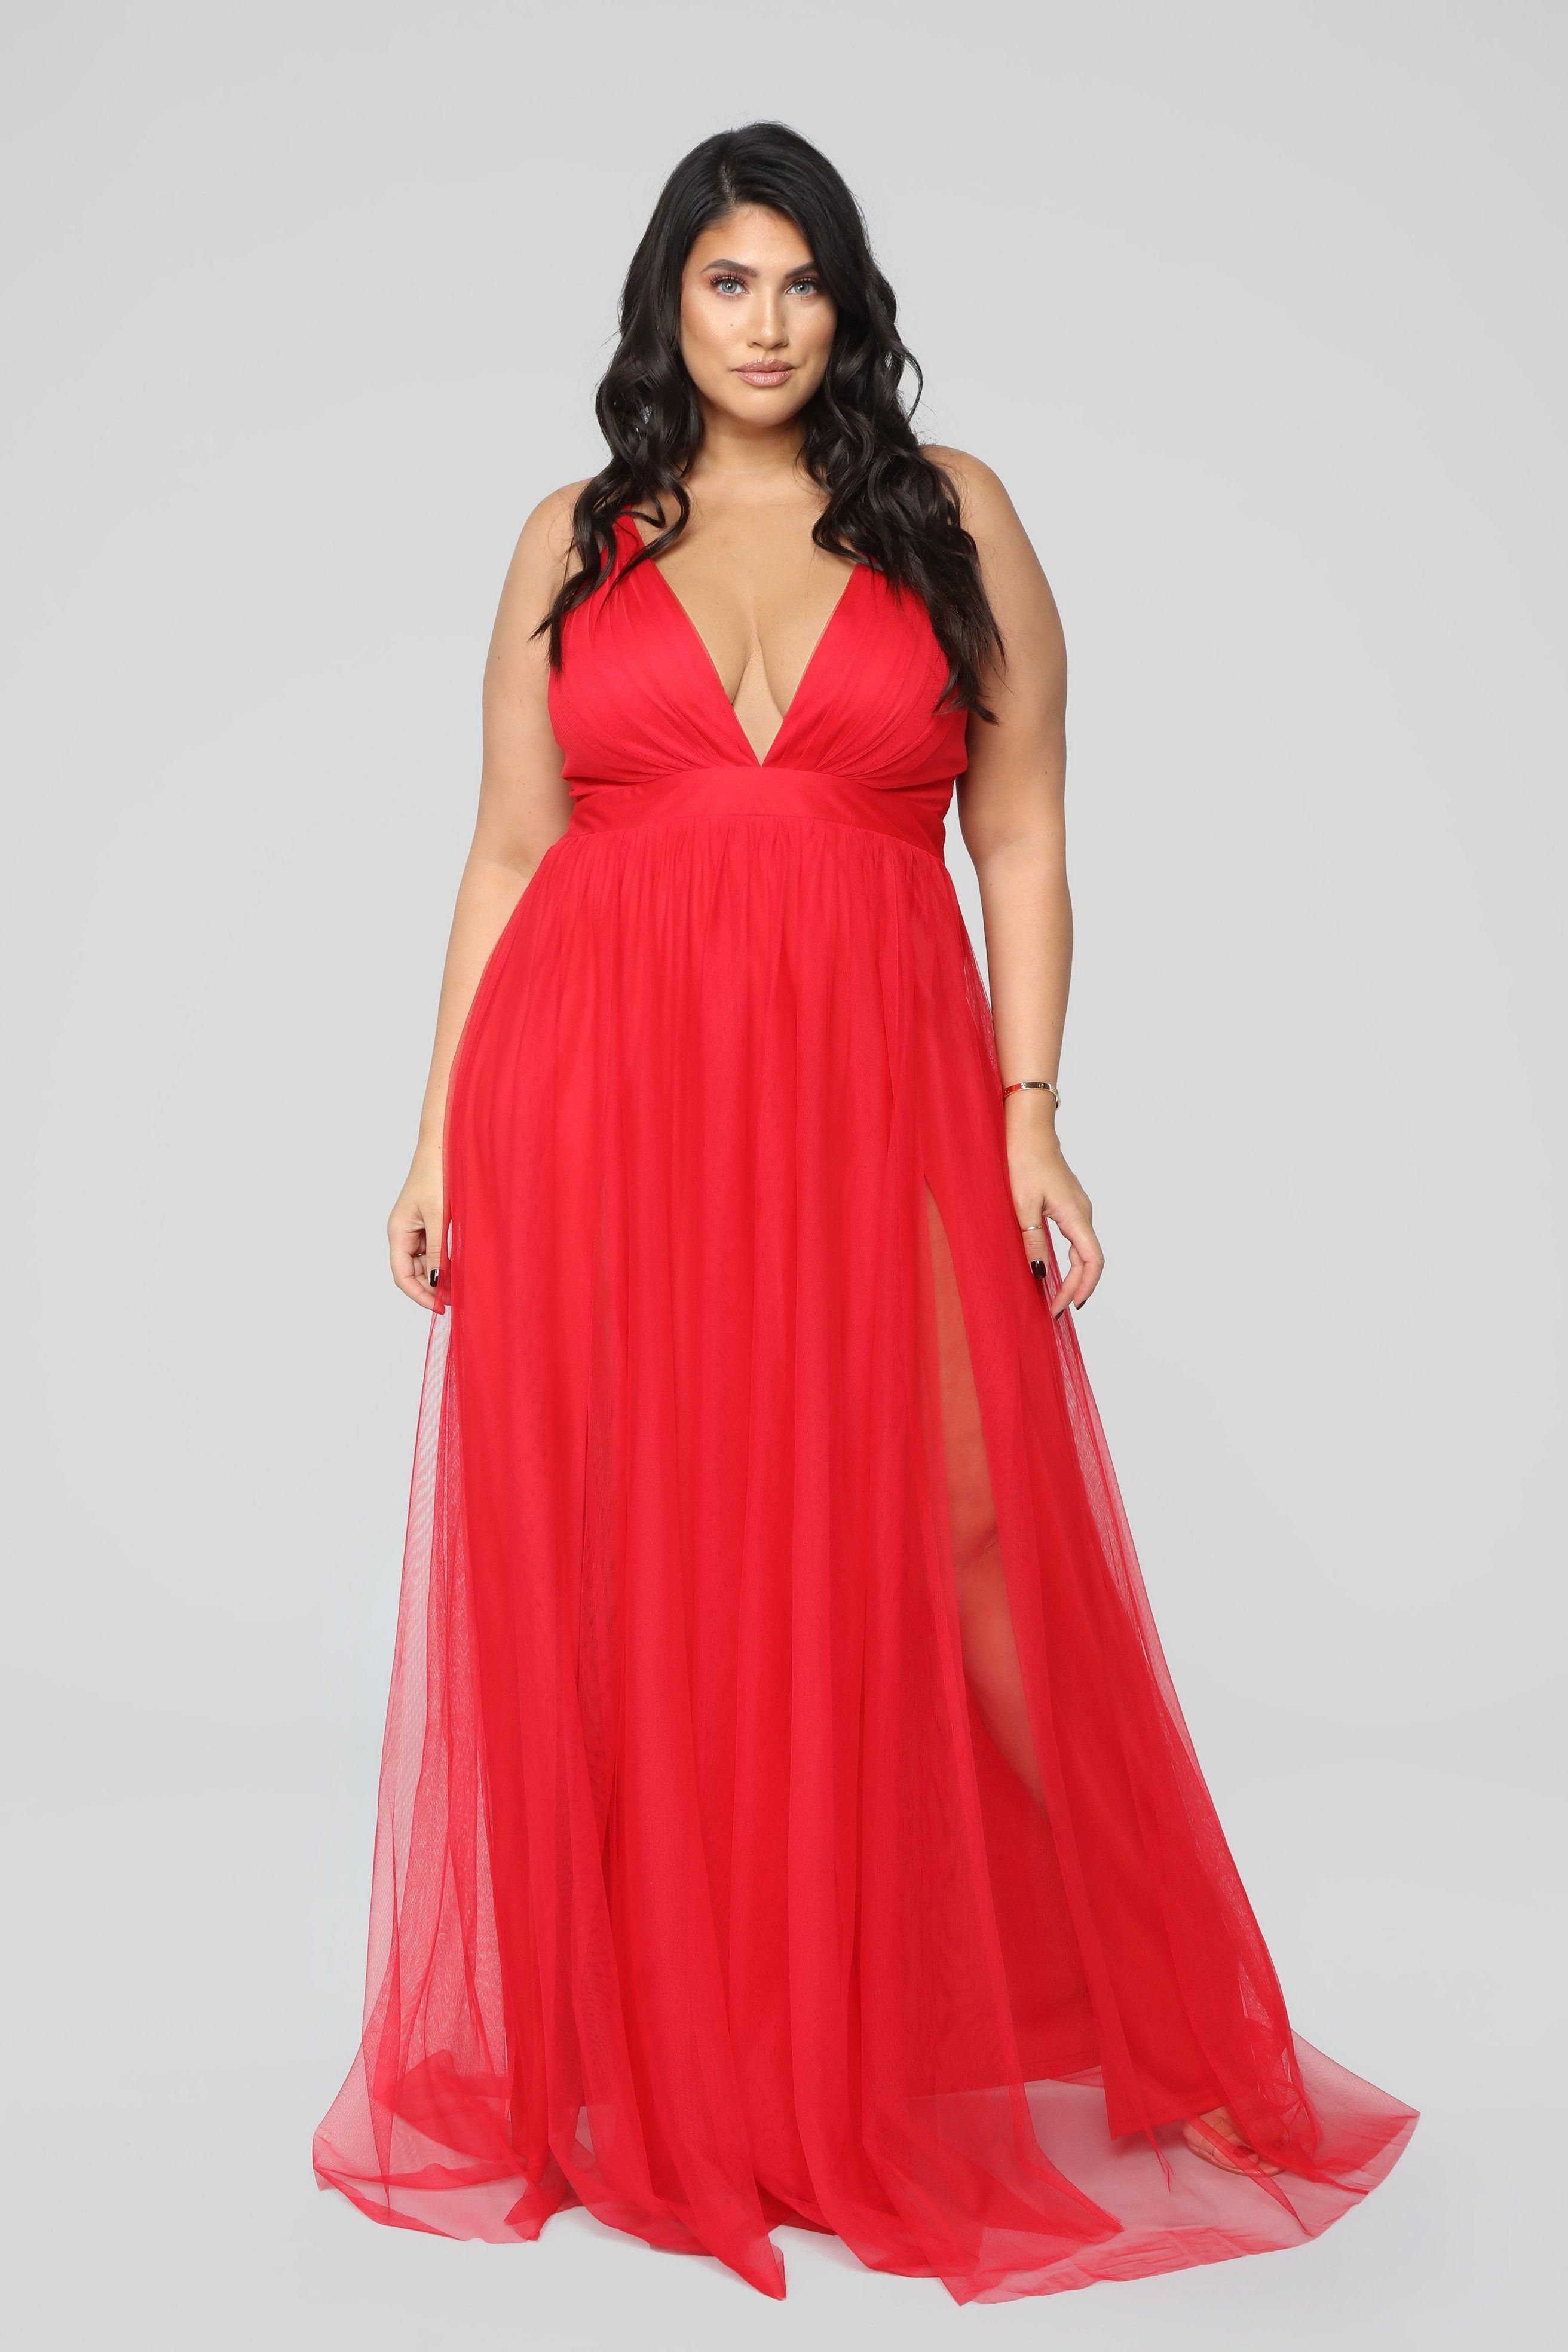 On The Runway Maxi Dress Red Plus Size Red Dress Red Dress Royal Blue Maxi Dress [ 3936 x 2624 Pixel ]